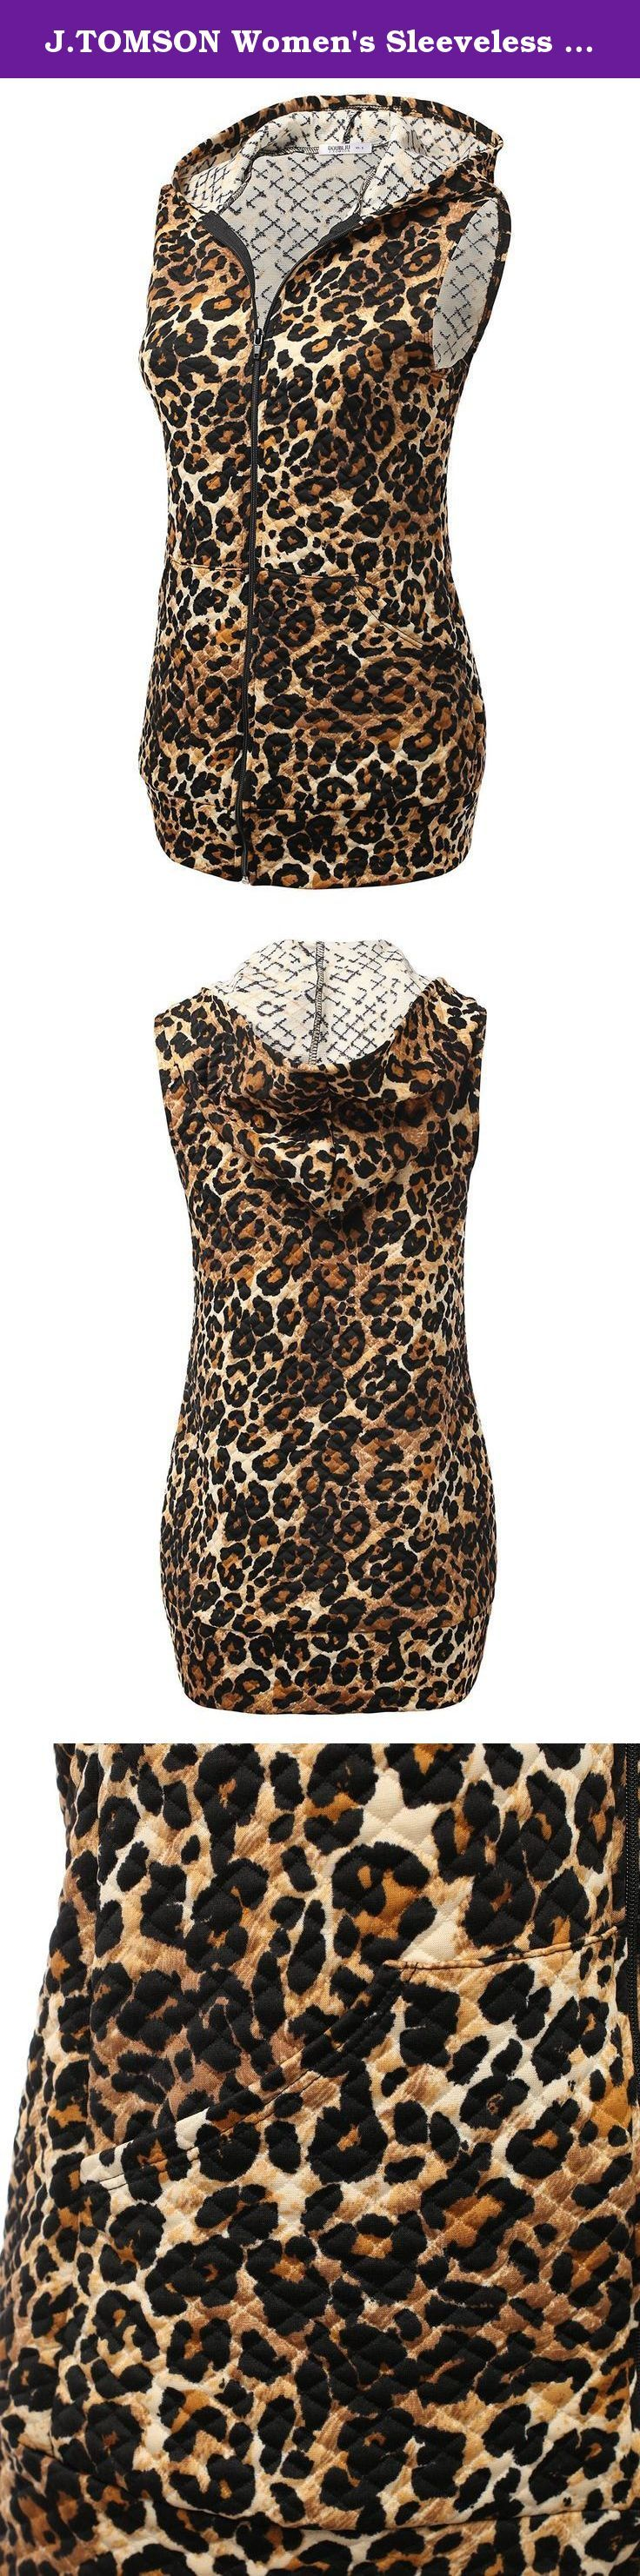 J.TOMSON Women's Sleeveless Animal Print & Solid Hooded Zip Up Vest Jacket BROWNLEOPARD 3XL. J.TOMSON Women's Sleeveless Animal Print & Solid Hooded Zip Up Vest Jacket is a fashionable match for any outfit.